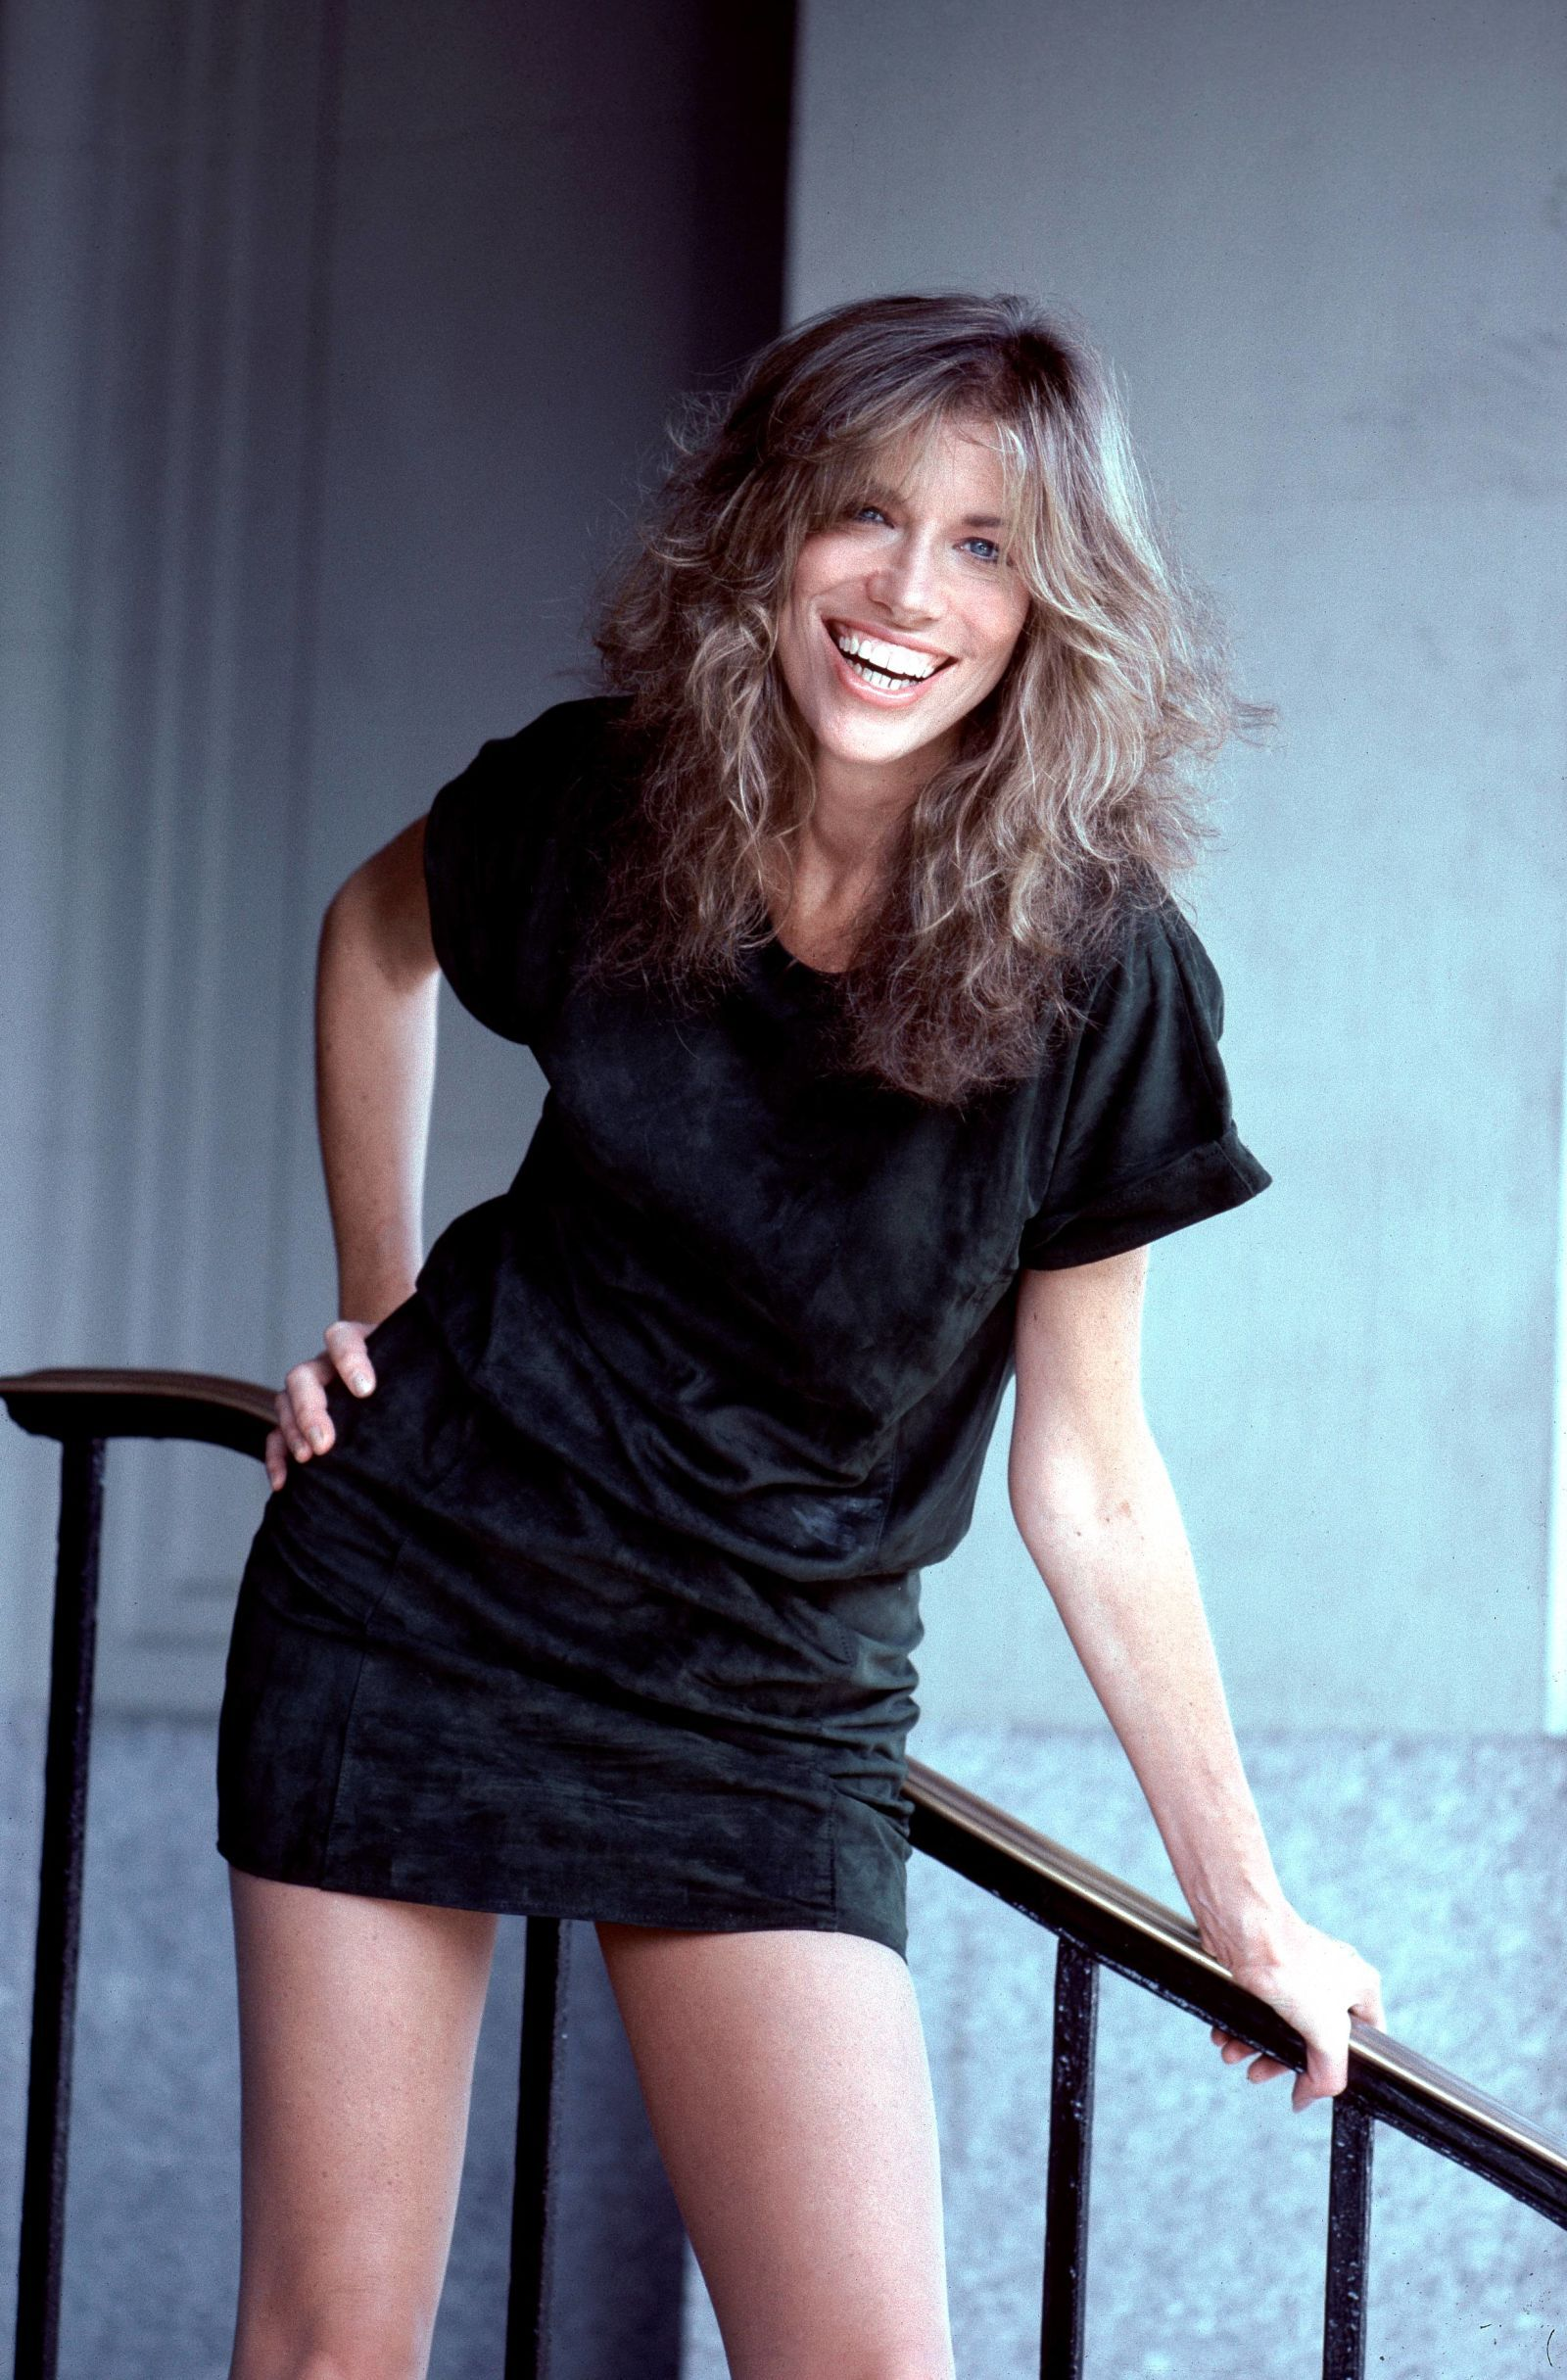 Carly Simon Finally Reveals Who You Re So Vain Is About Carly Simon Carley Simon Singer